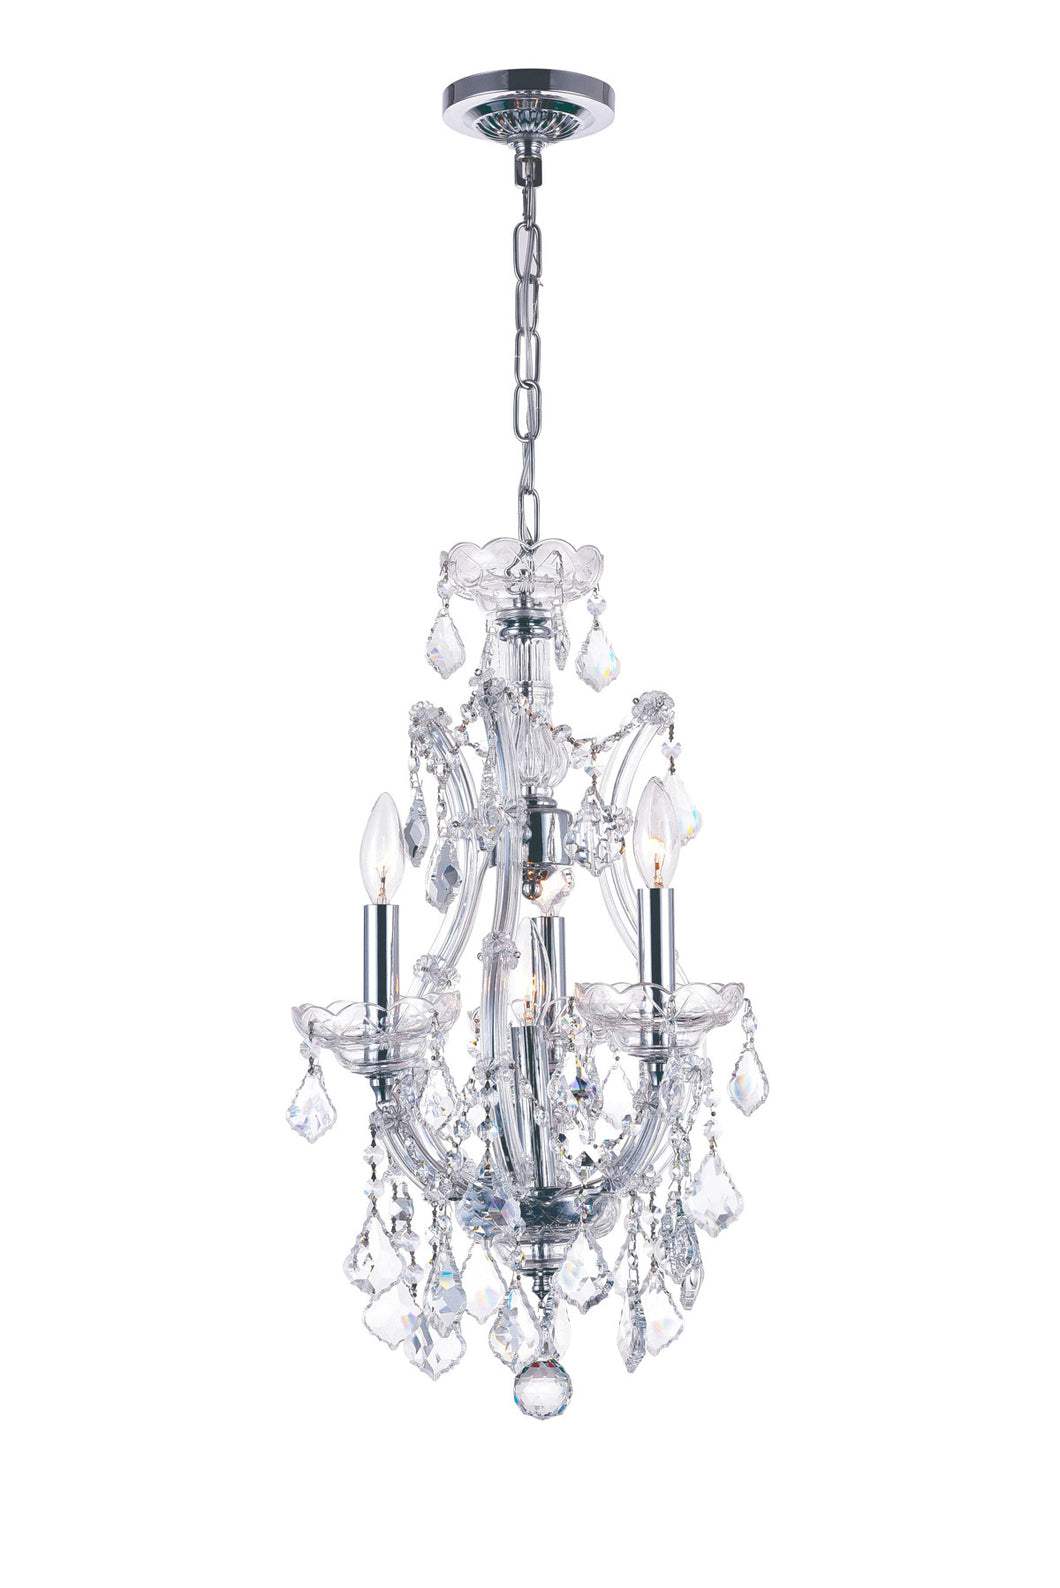 4 Light Up Mini Chandelier with Chrome finish